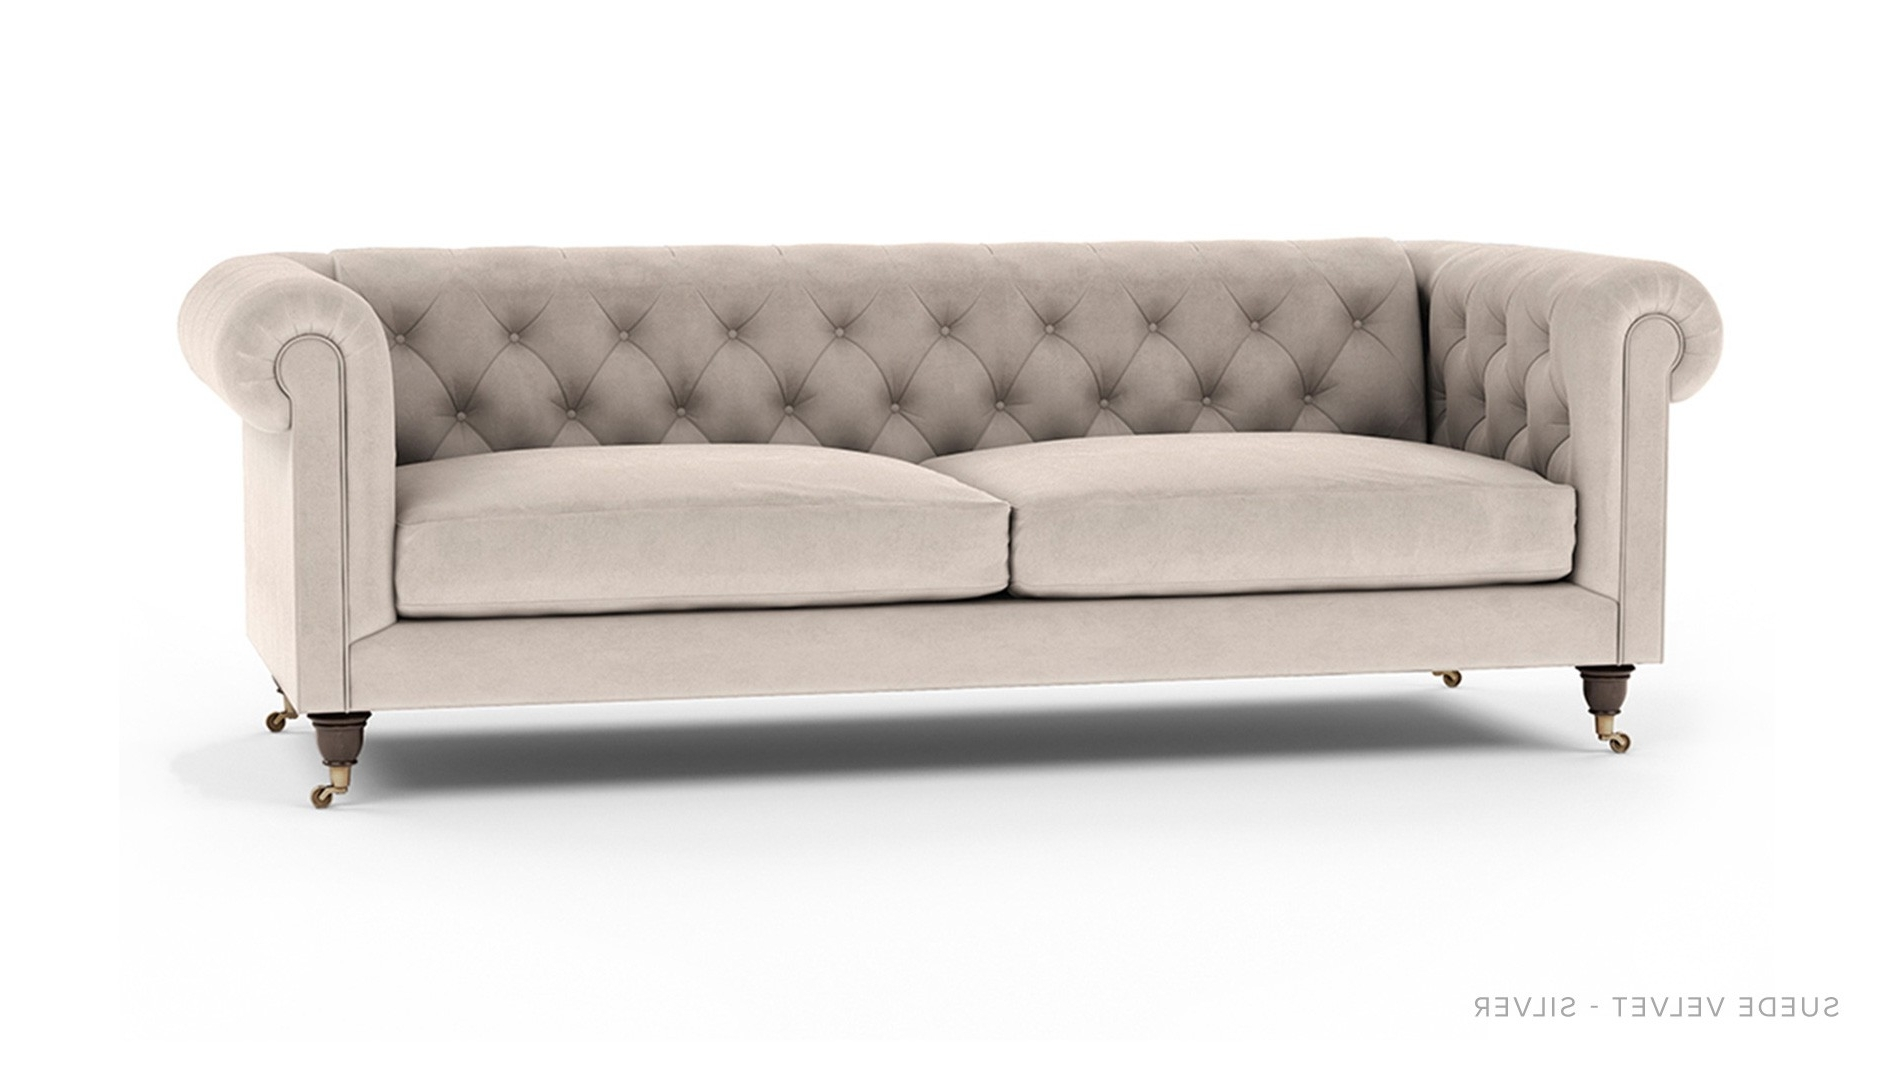 Sofa – Luxdeco Inside Famous Chesterfield Sofas (View 4 of 20)